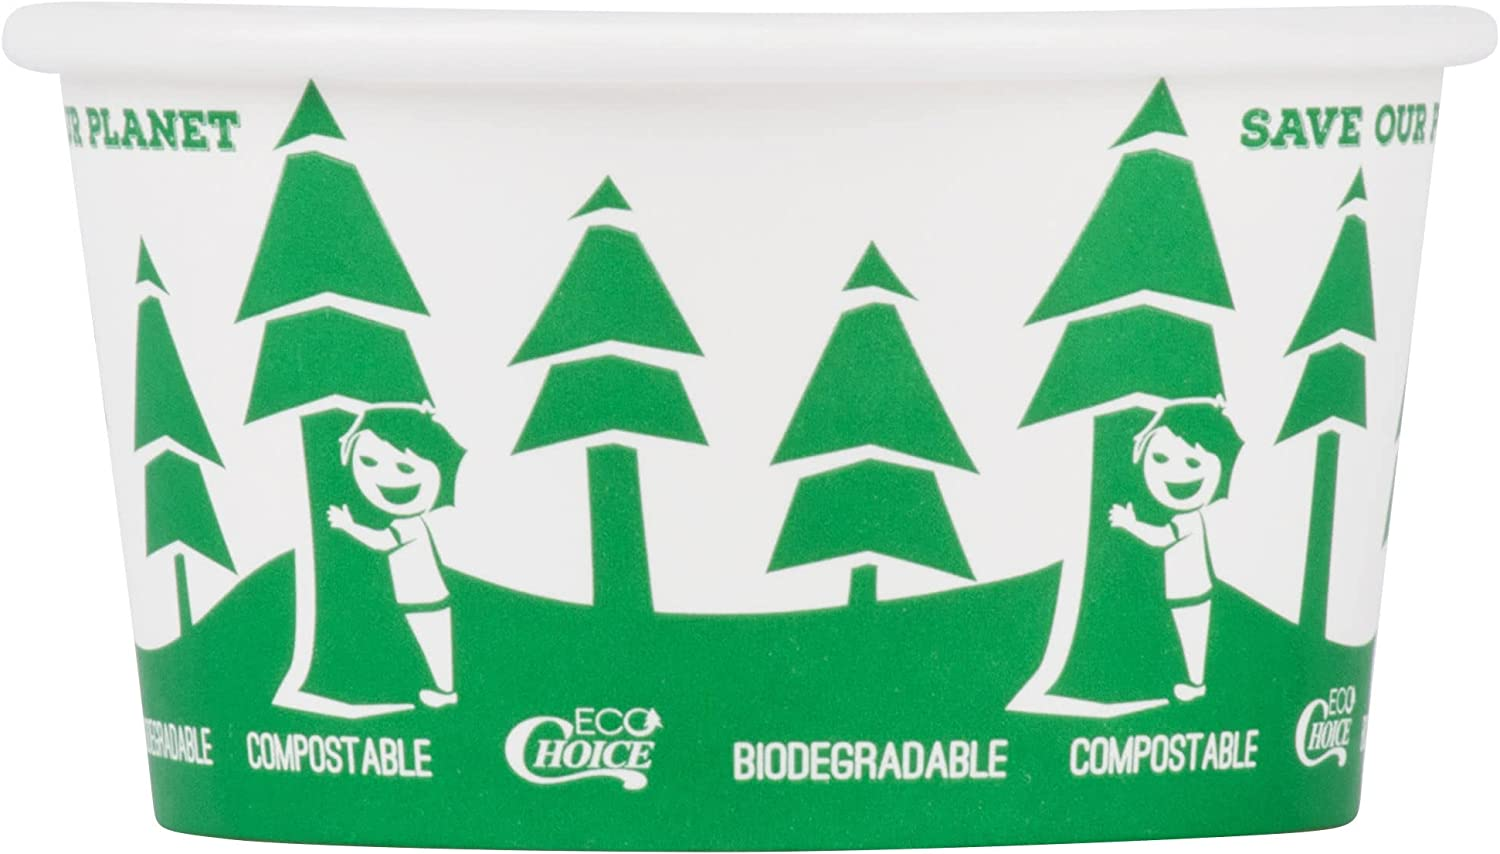 Rapid rise TableTop King 12 oz. Compostable Paper and Soup Deluxe Biodegradable Ho